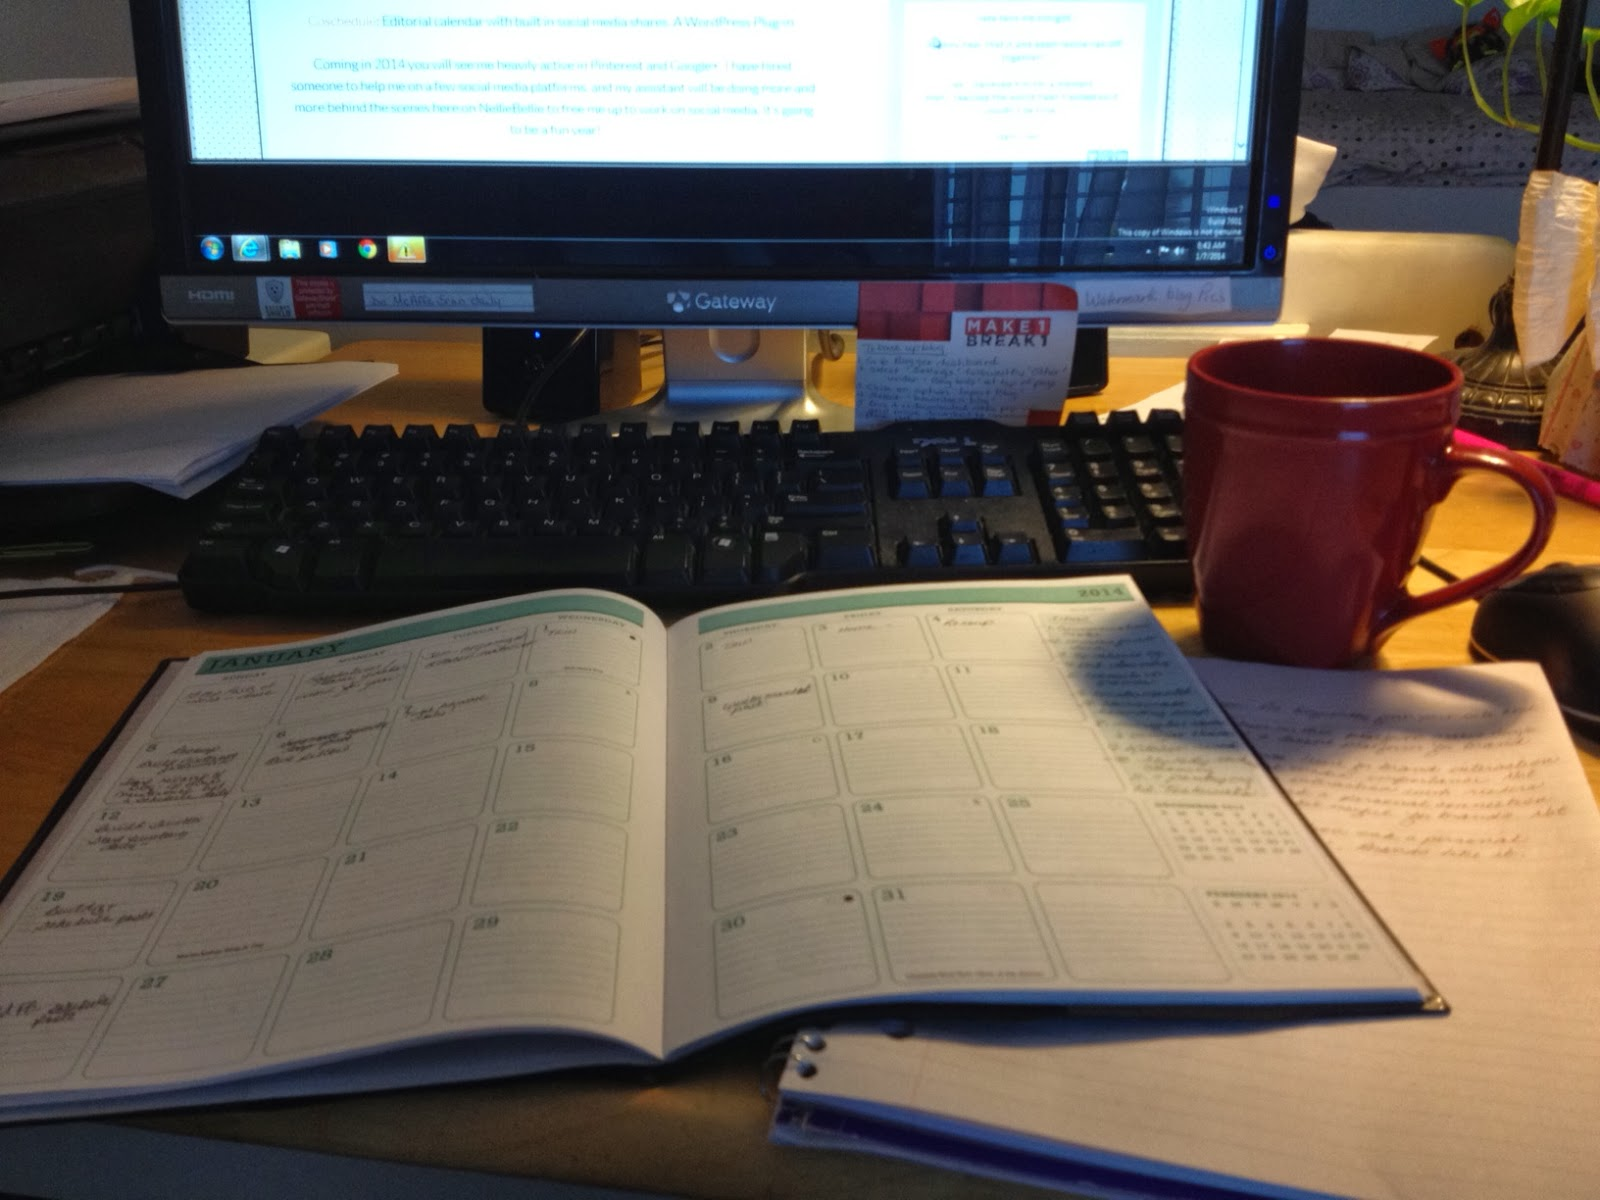 Computer, calendar, pen and coffee